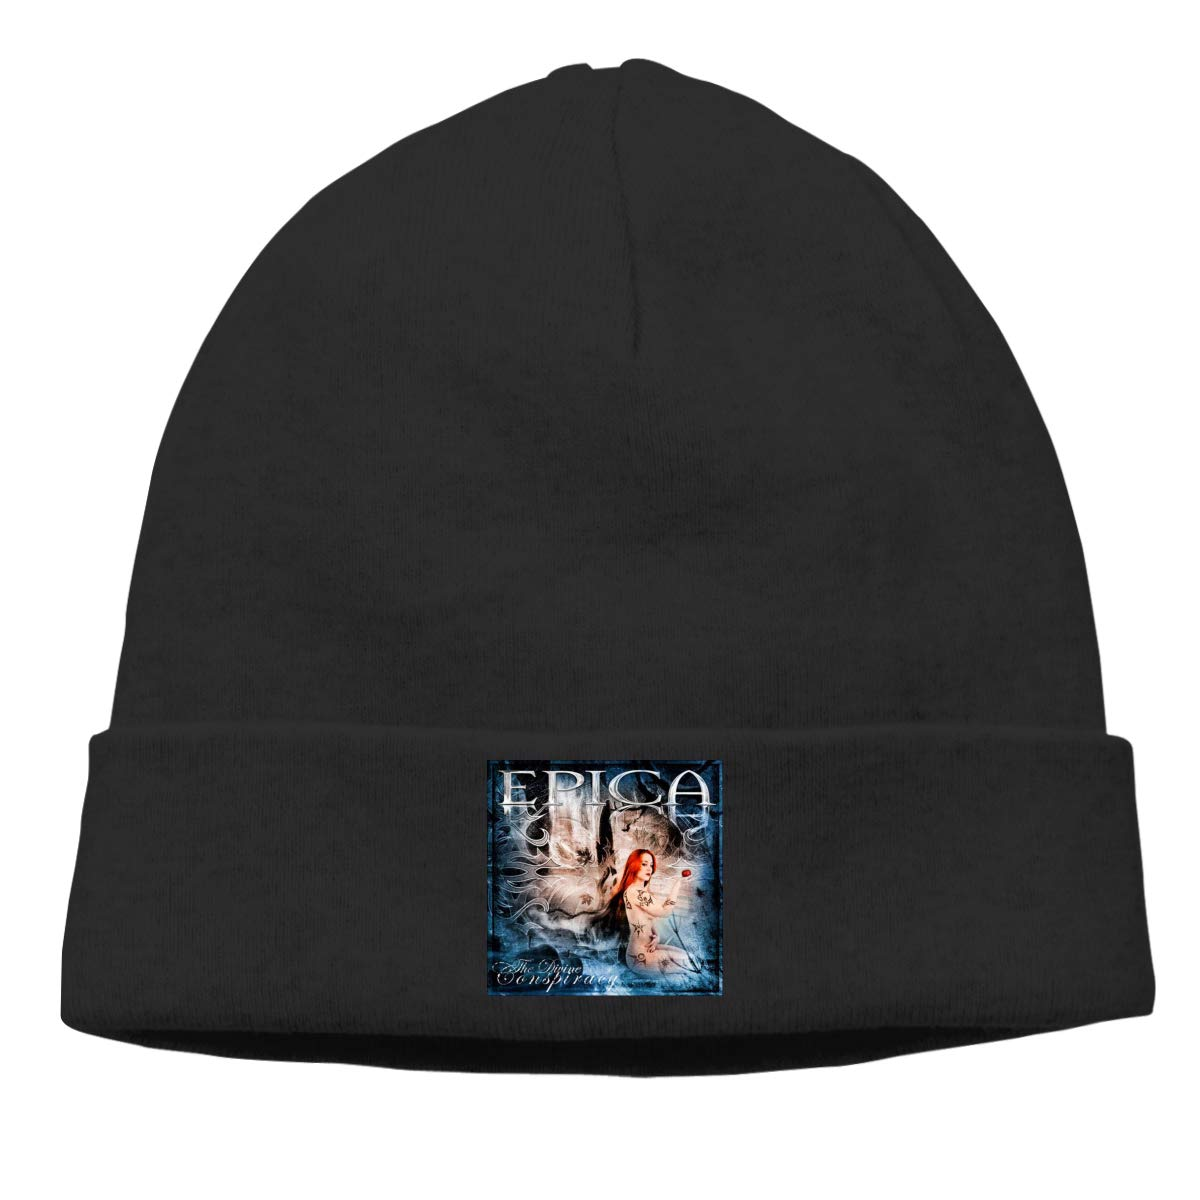 ba633a6c771 MUtang Epica The Divine Conspiracy Skull Hats Knitted Cap Beanie Black at  Amazon Men s Clothing store